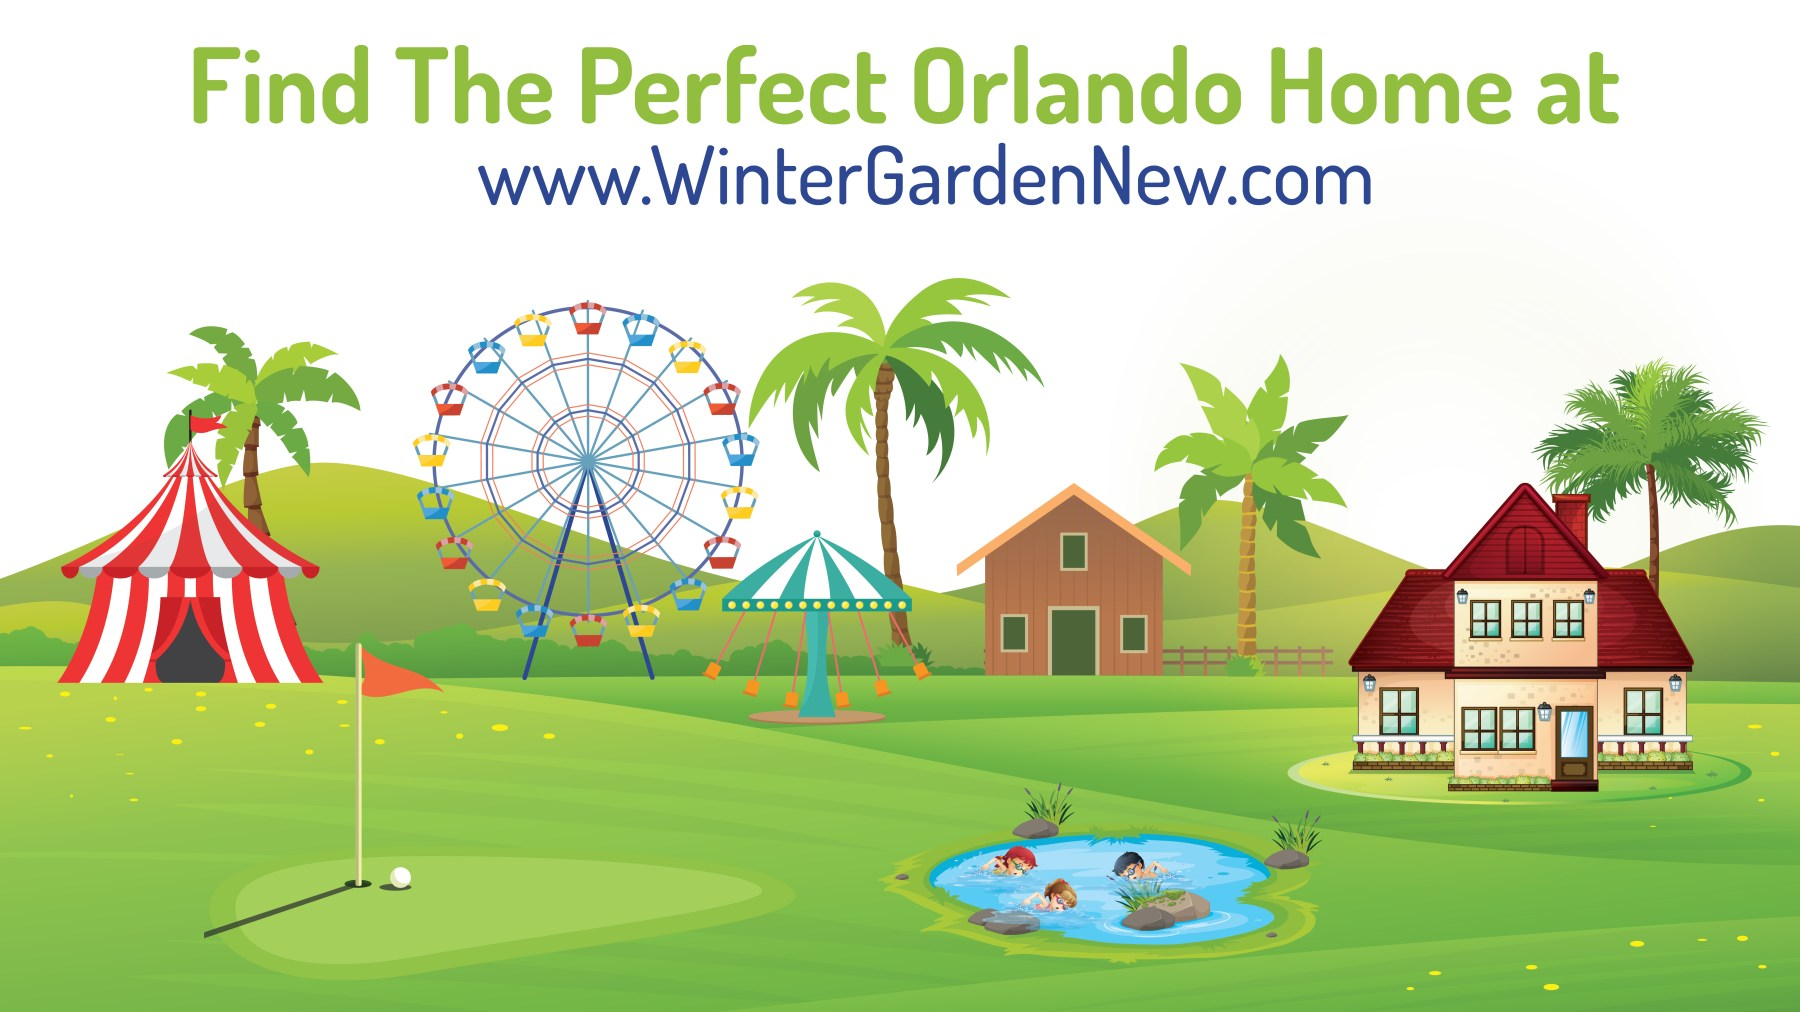 Rich Noto Realtor Offers Finest Vacation Homes and New Investment Properties in Orlando, Winter Garden, Windermere and More